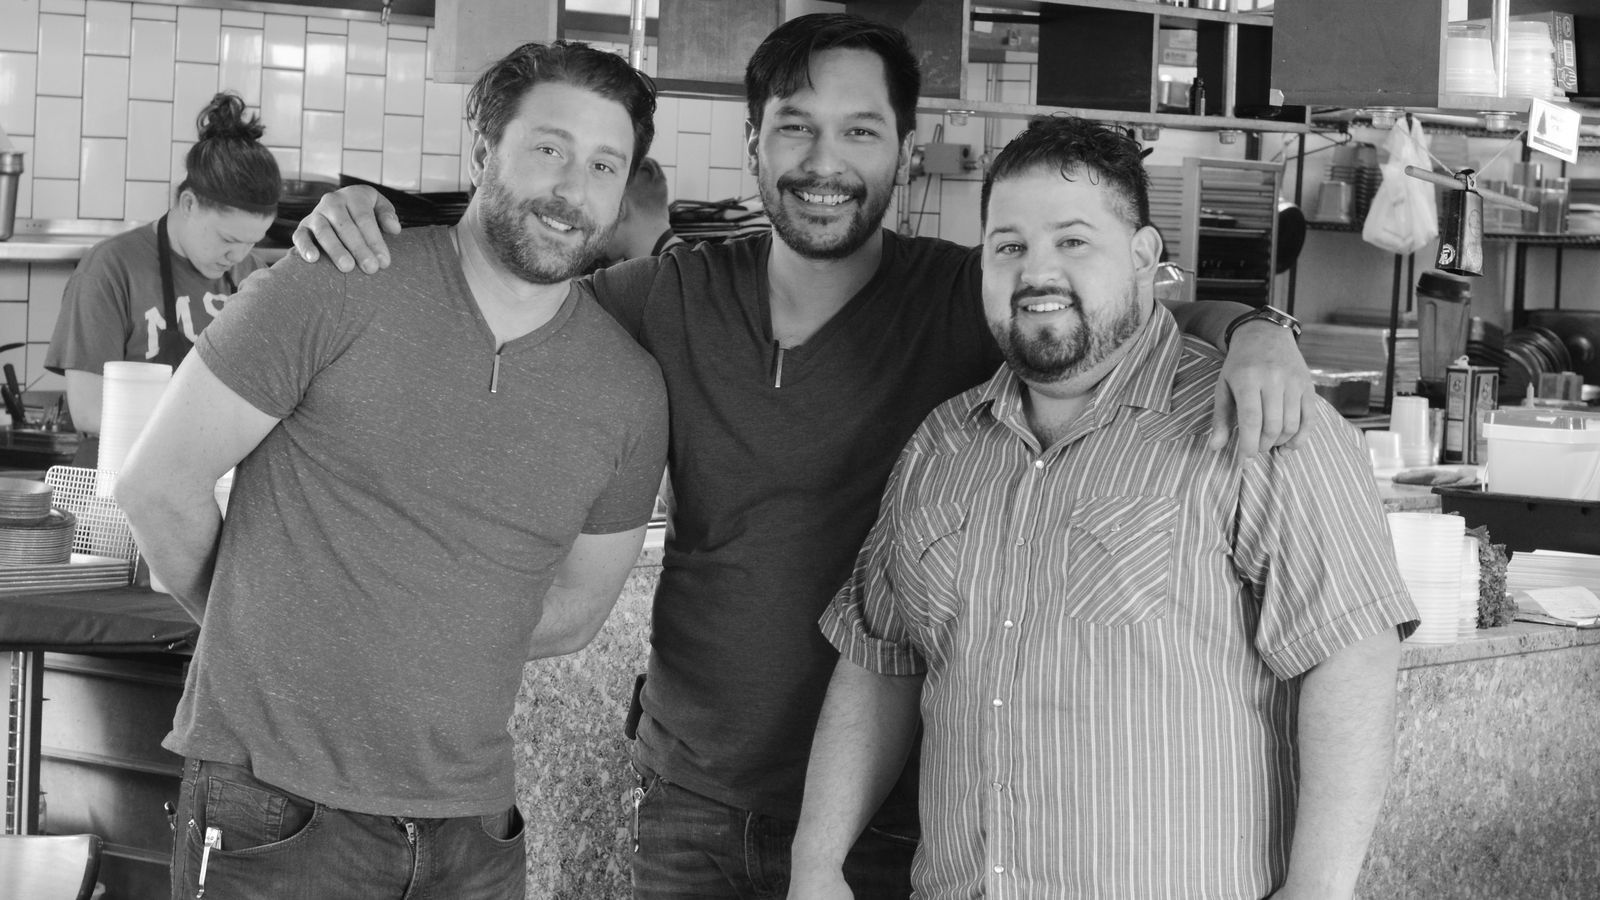 The three chefs embrace and smile to the camera